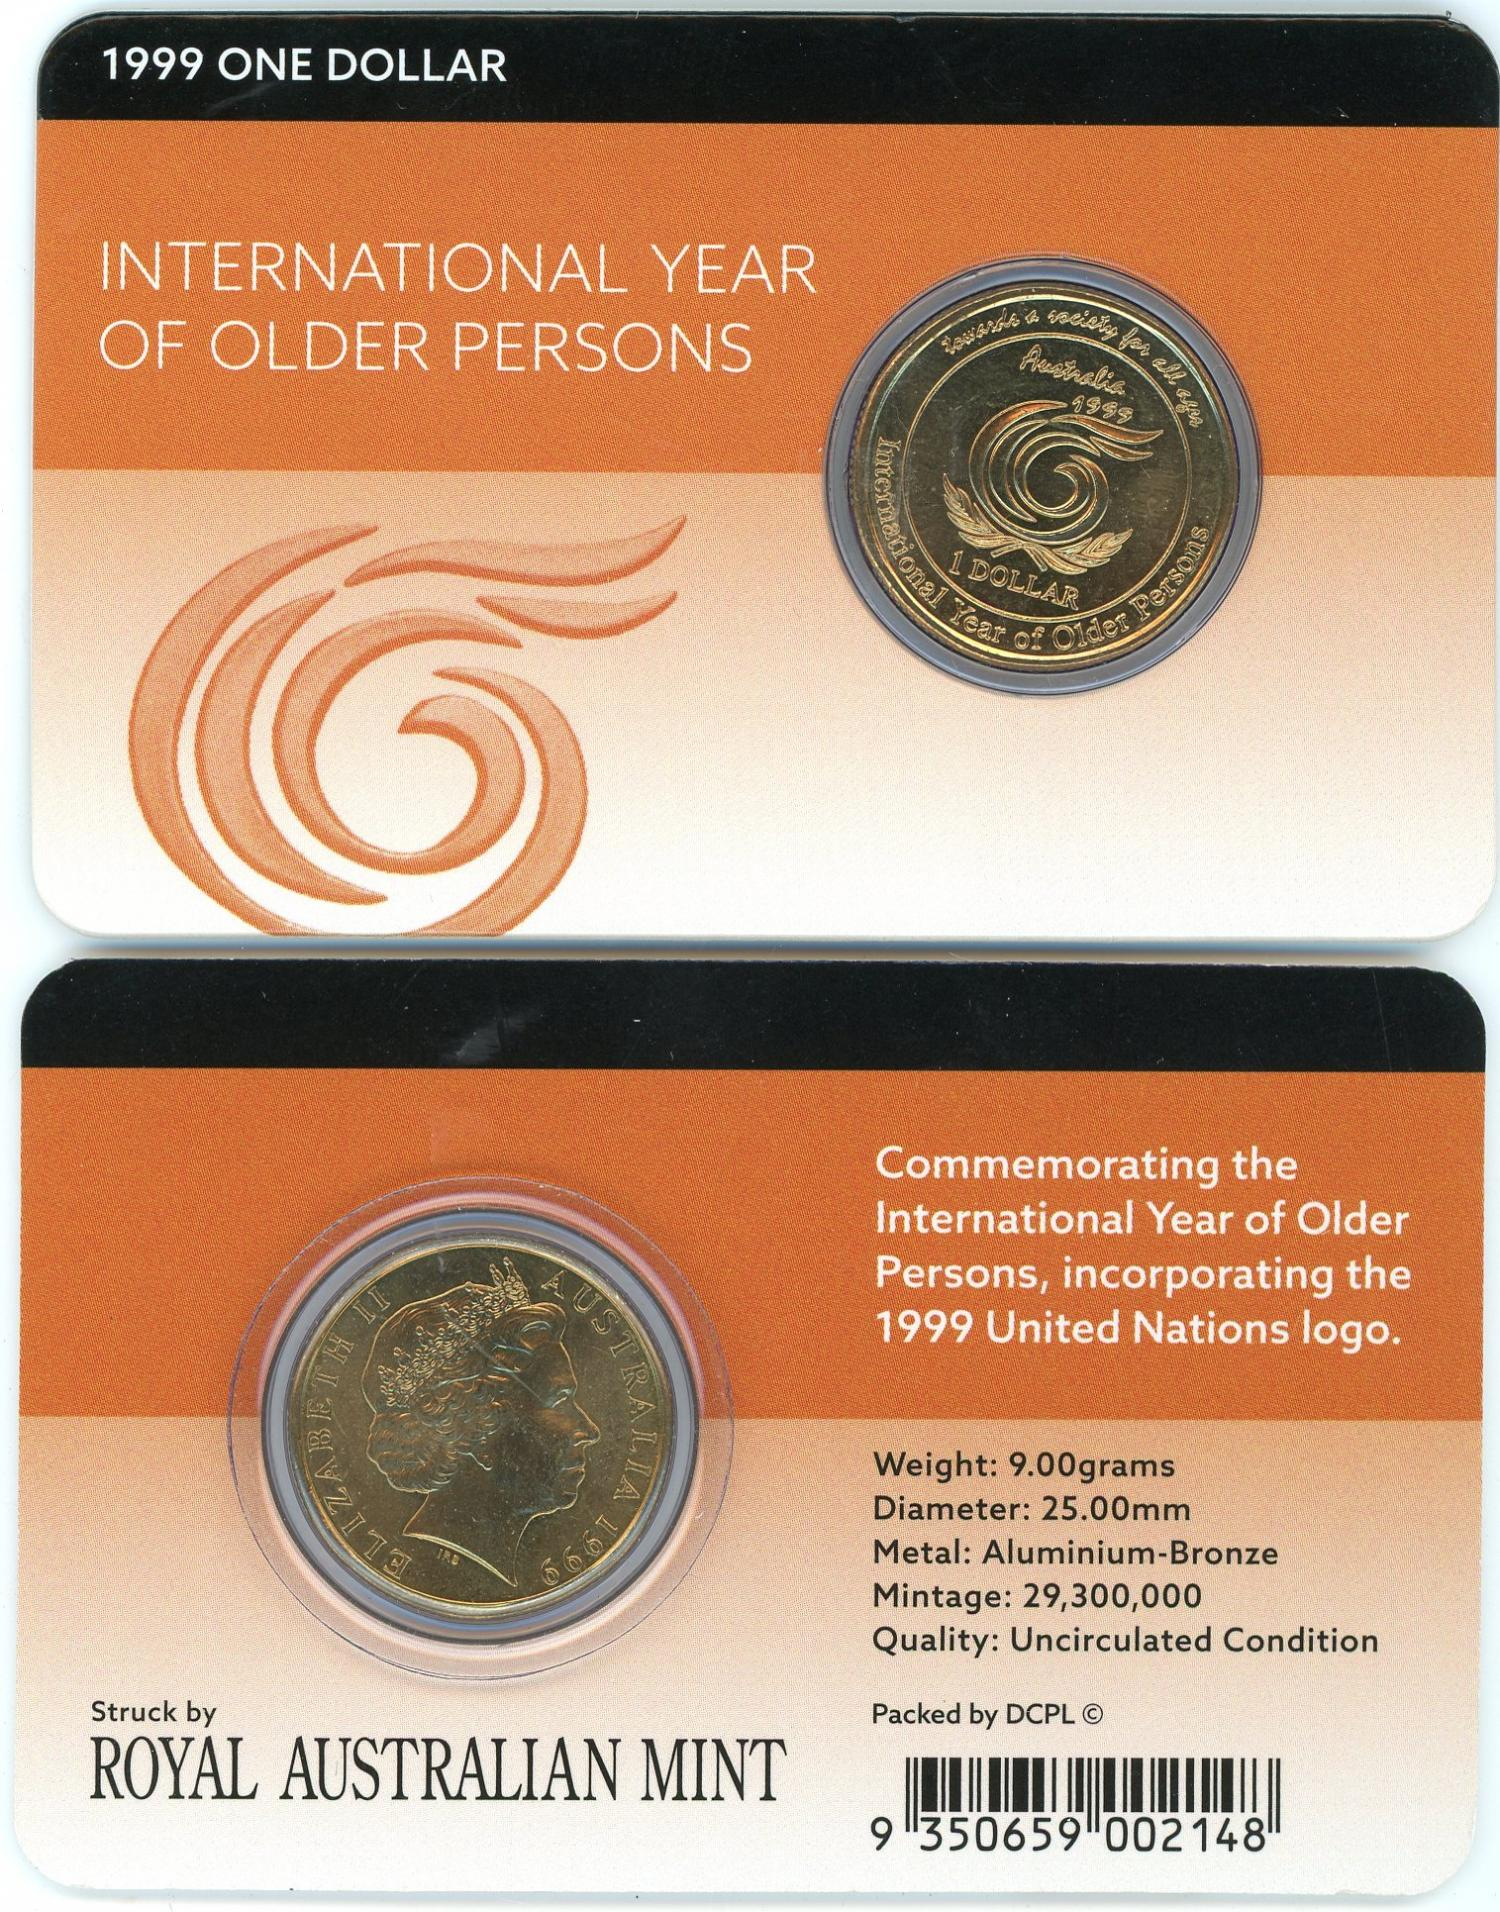 Thumbnail for 1999 $1 International Year of Older Persons